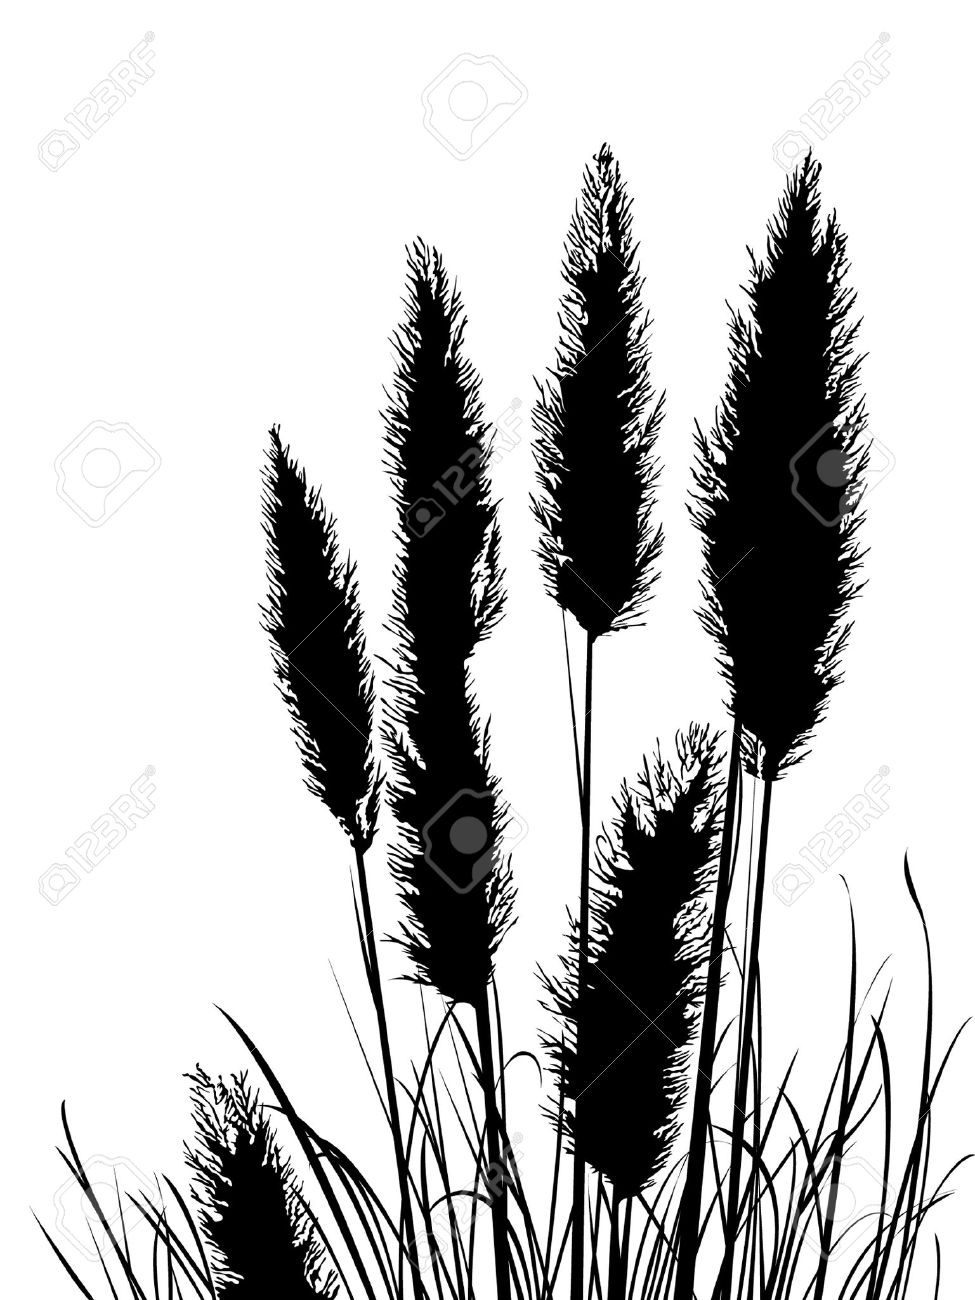 180 Pampas Grass Stock Illustrations, Cliparts And Royalty Free.